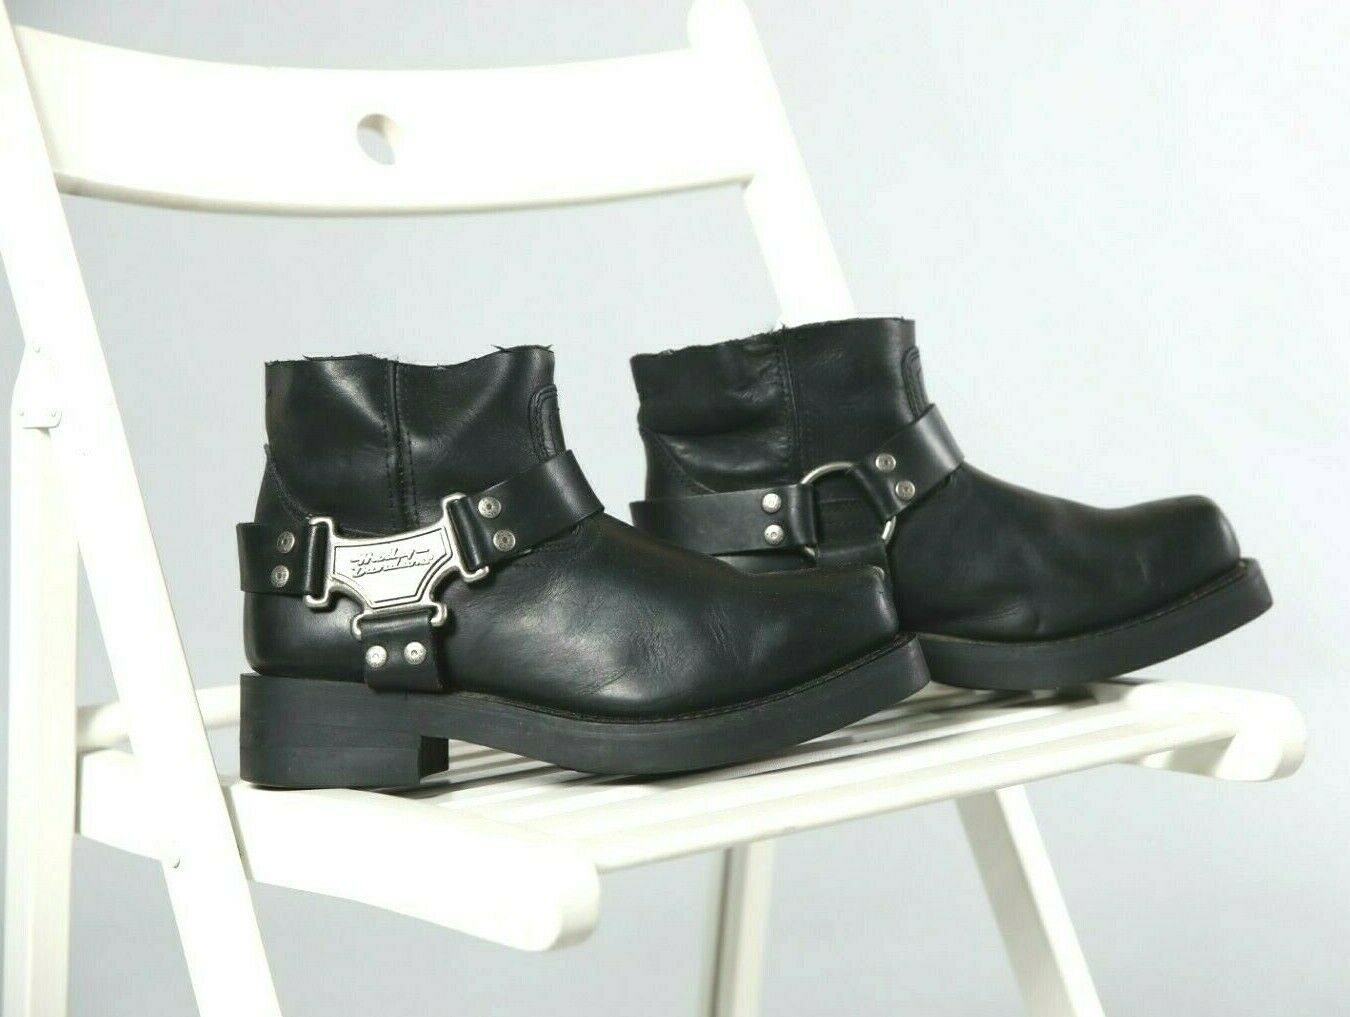 HARLEY DAVIDSON BLACK REWORKED HARNESS BOOTS WITH HARLEY ICONIC STUDS AND BUCKLE